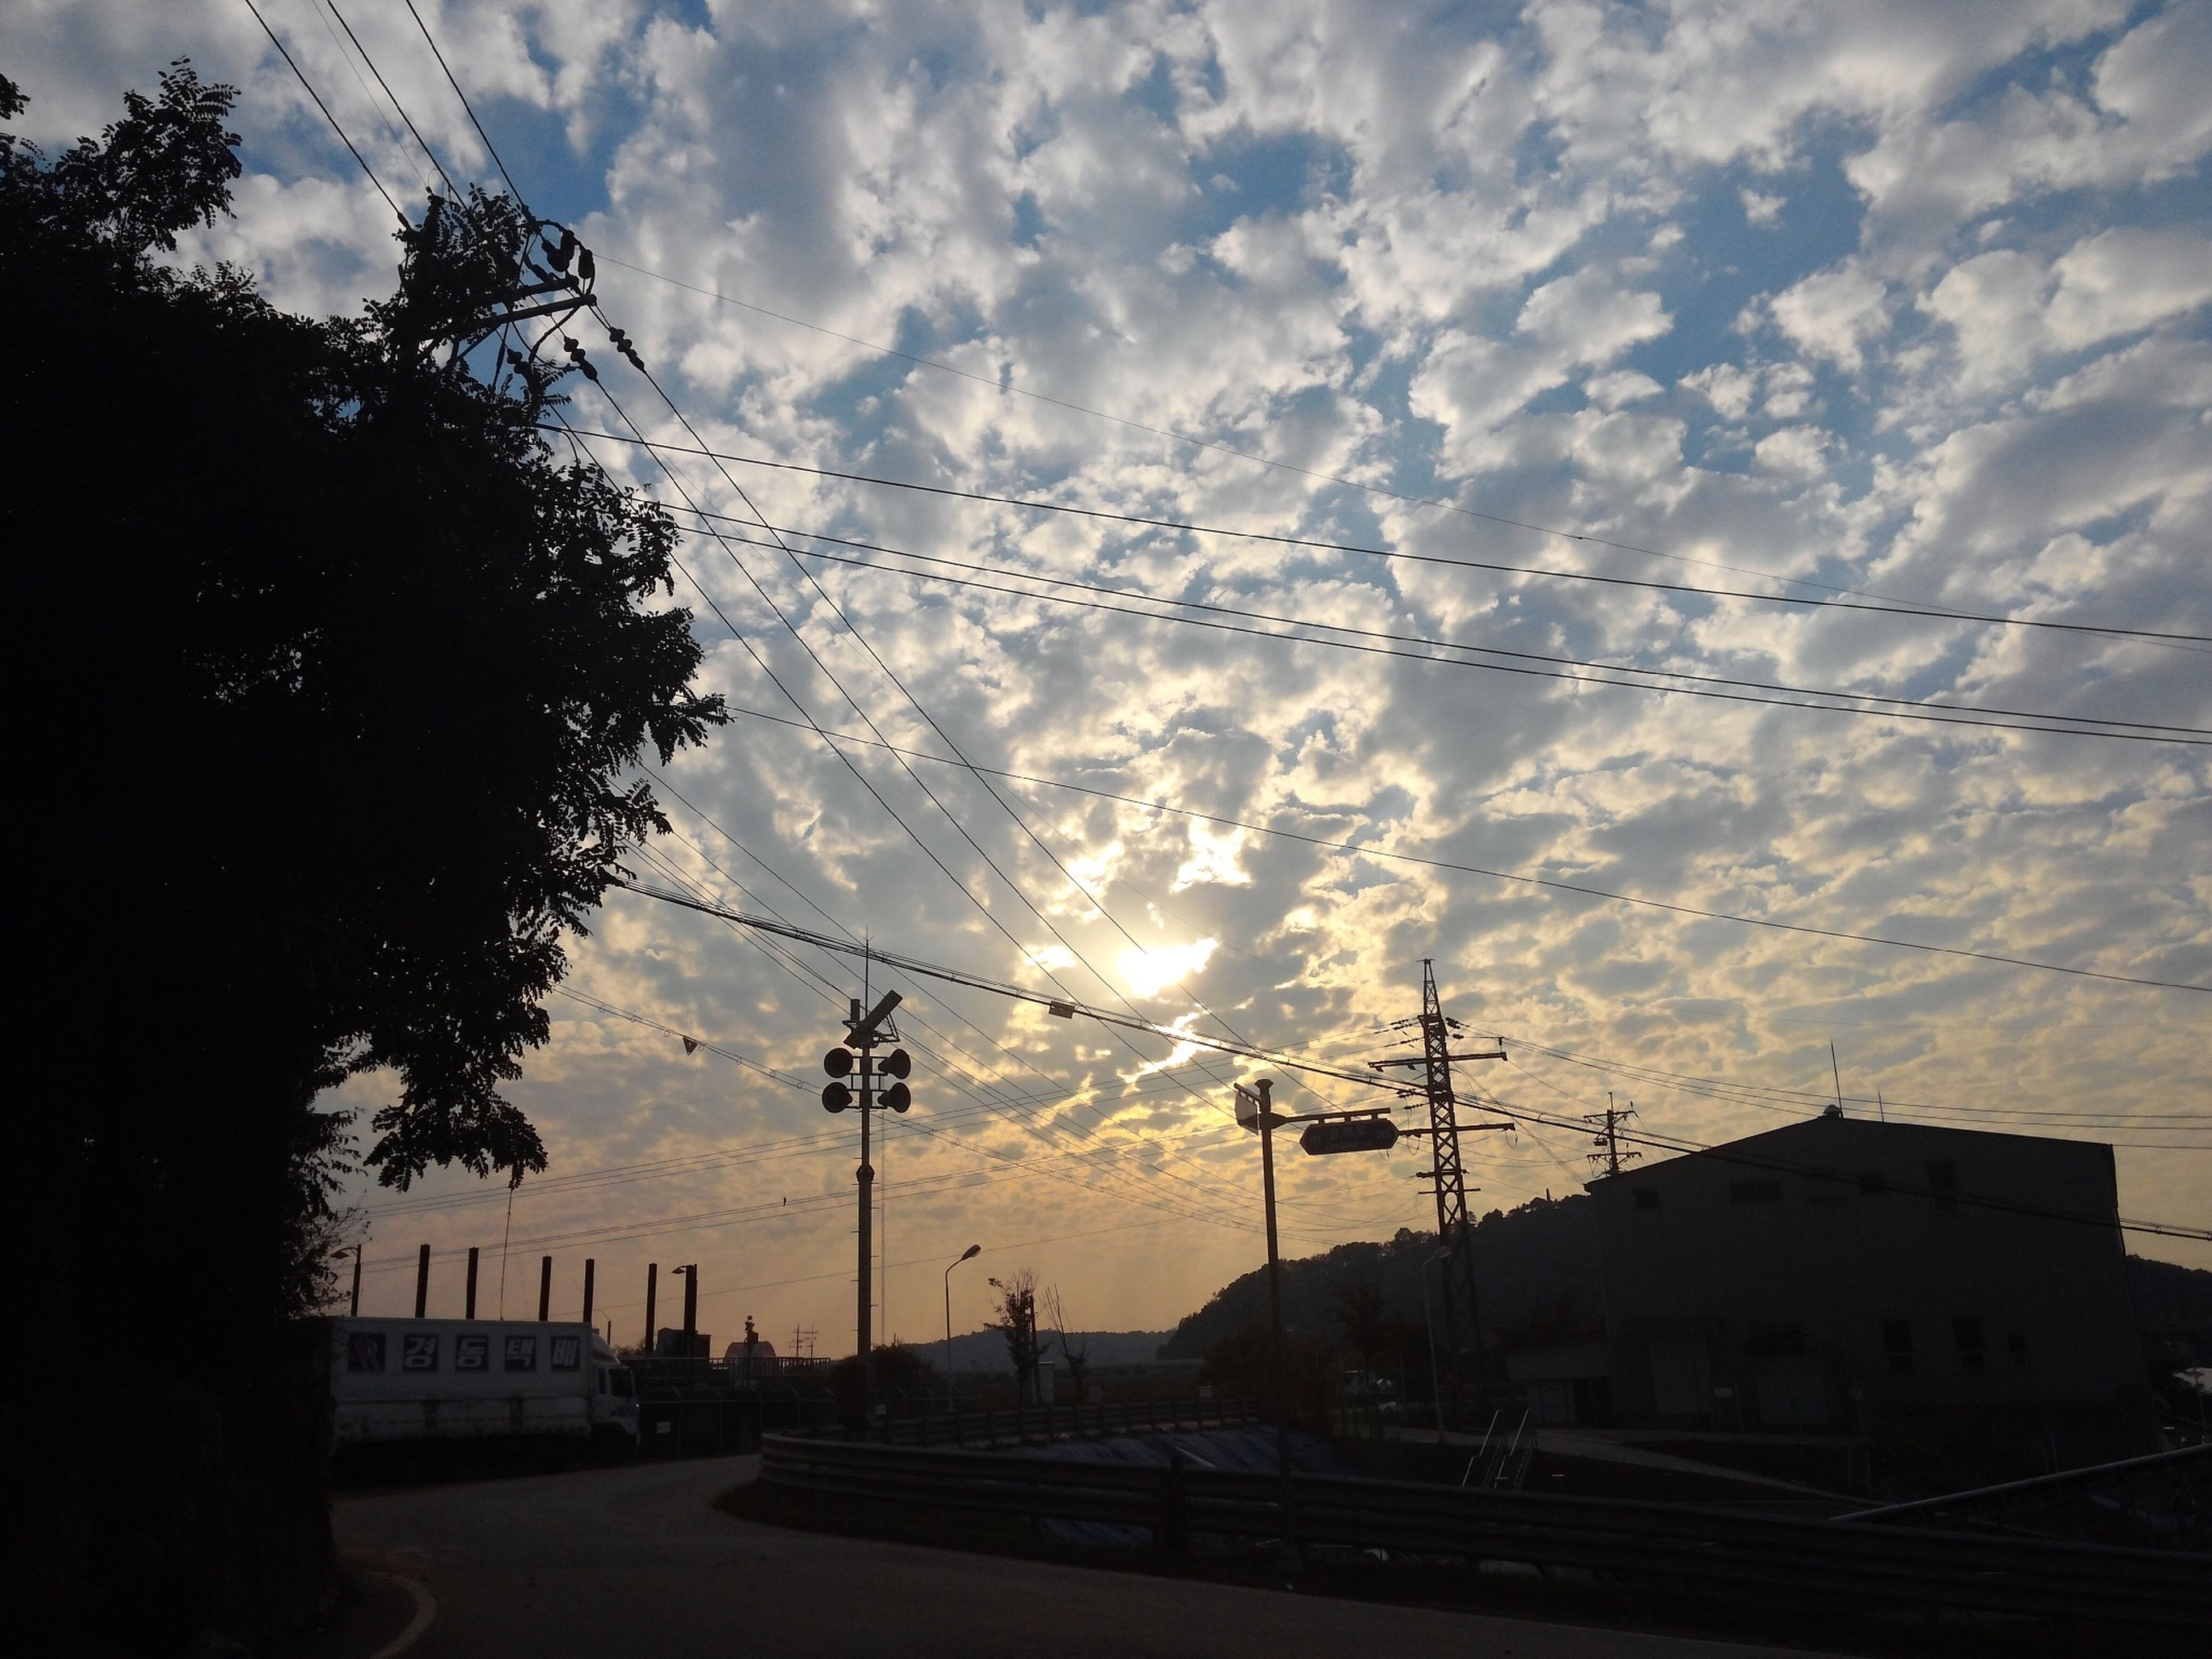 electricity pylon, sky, power line, silhouette, cloud - sky, sunset, electricity, power supply, fuel and power generation, cloudy, building exterior, tree, road, connection, street light, transportation, cloud, cable, street, built structure